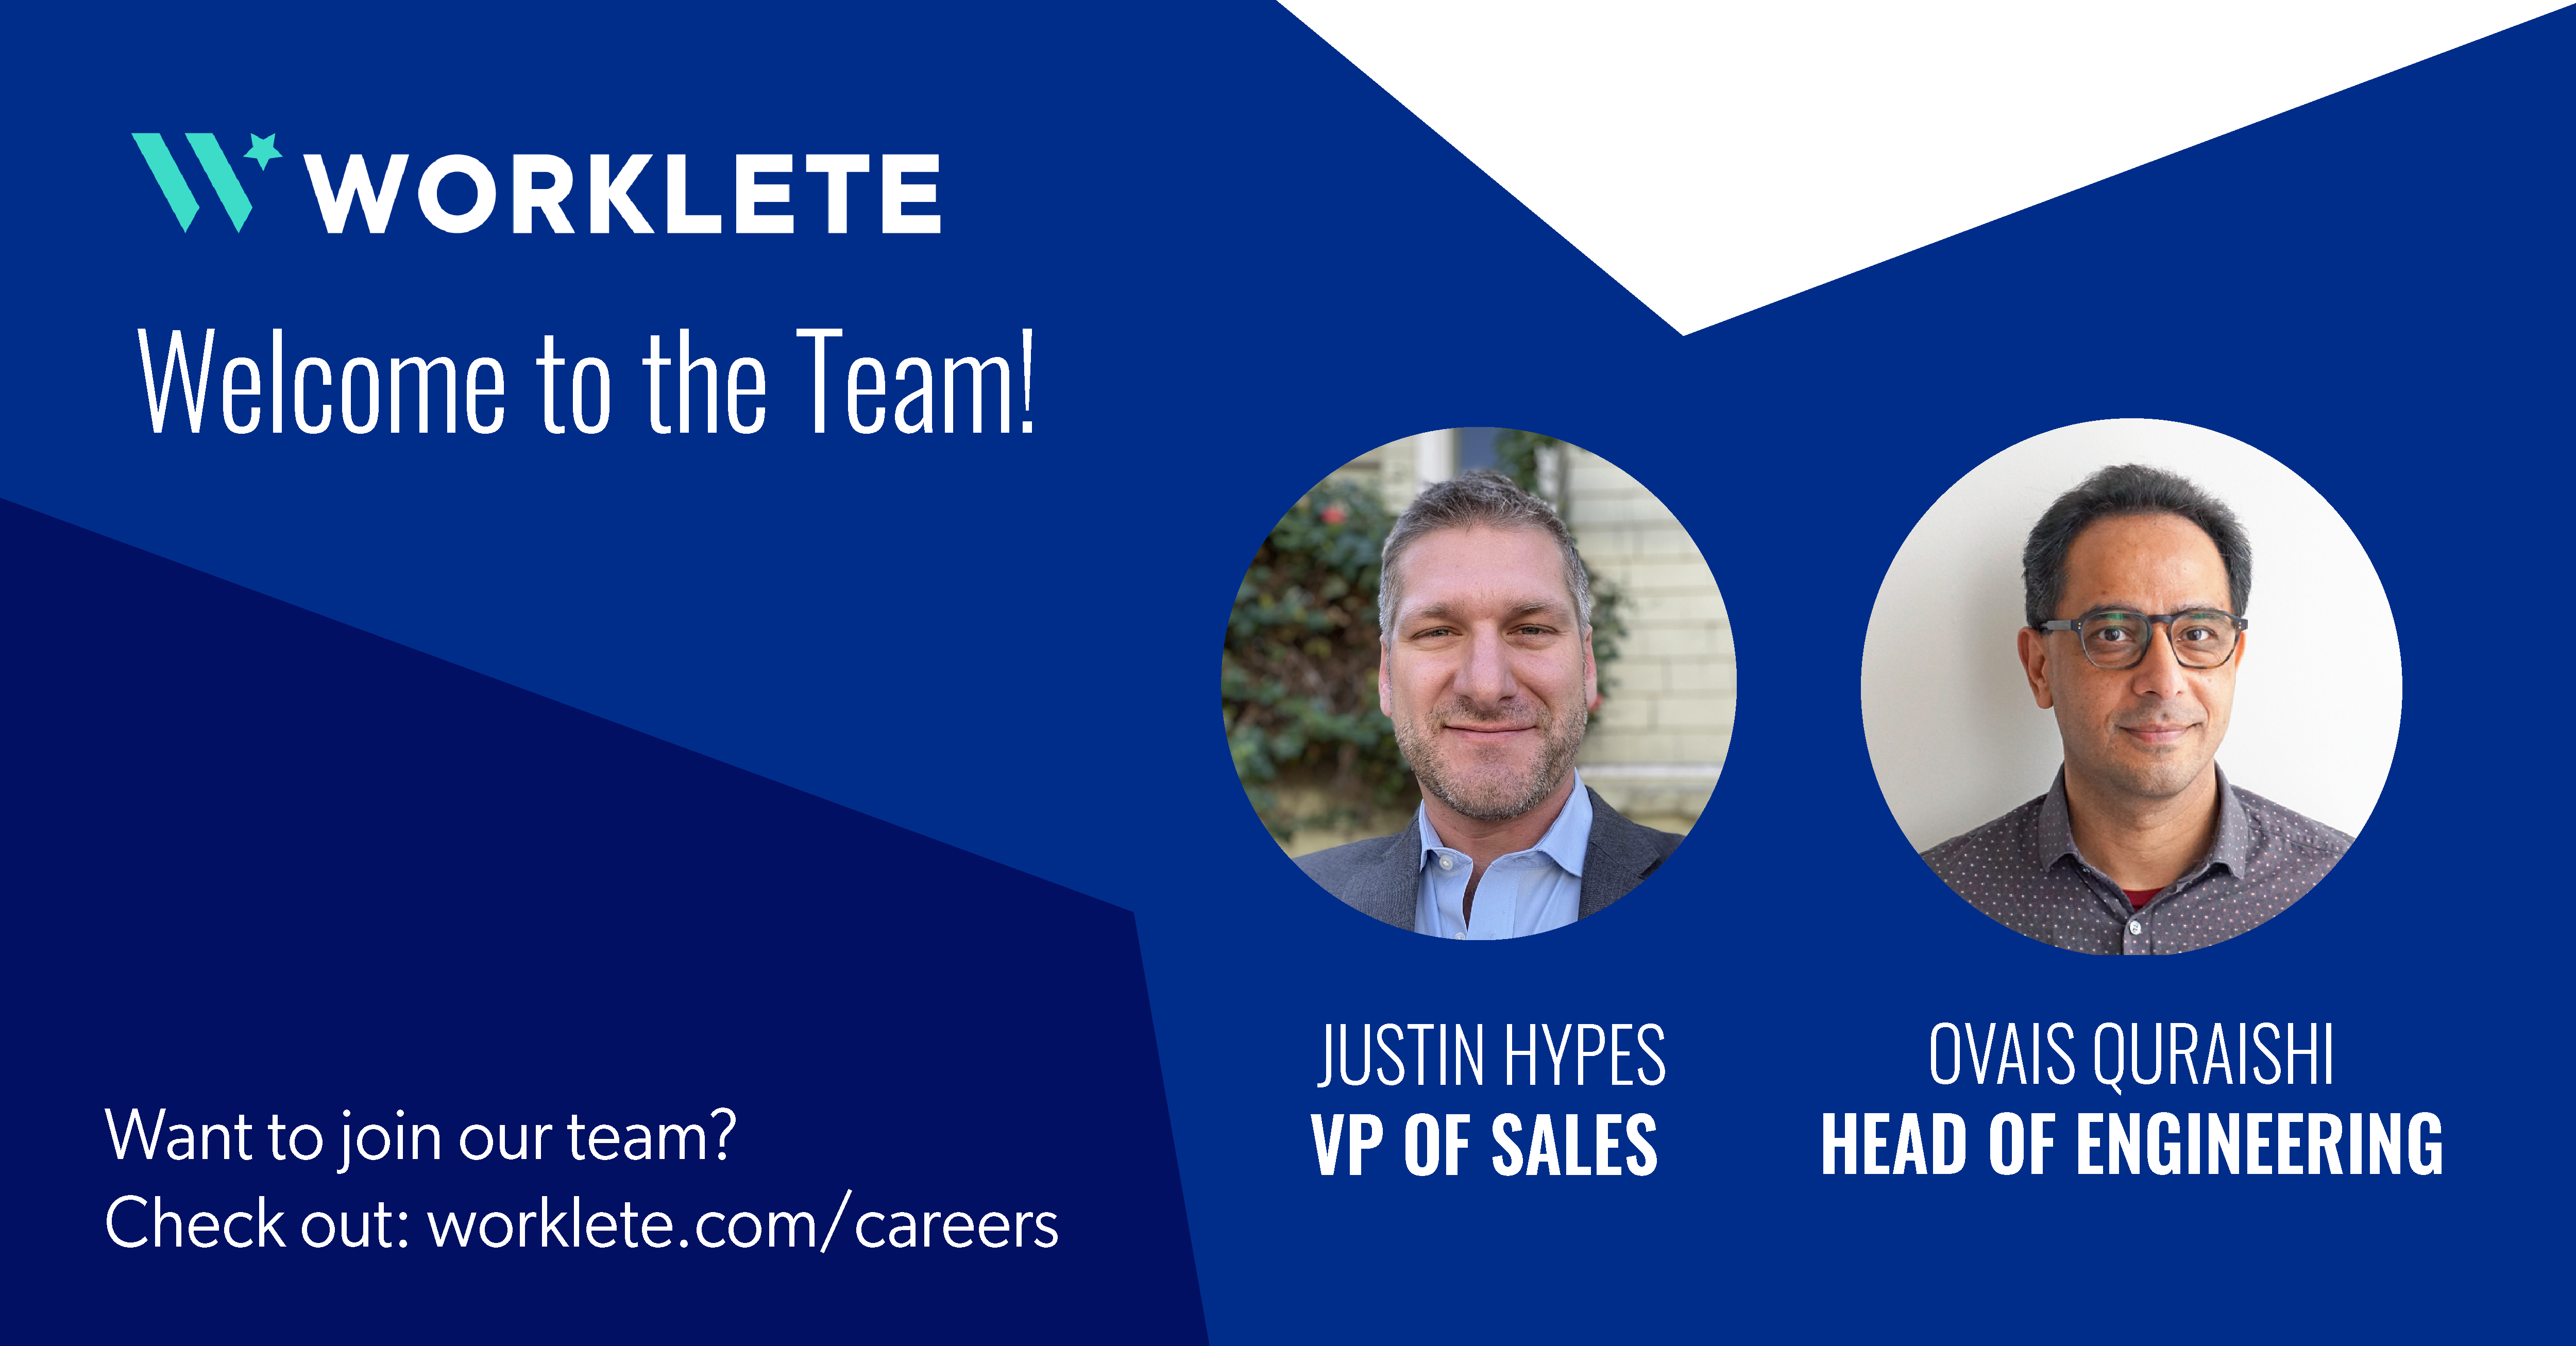 Get to Know the New Faces at Worklete